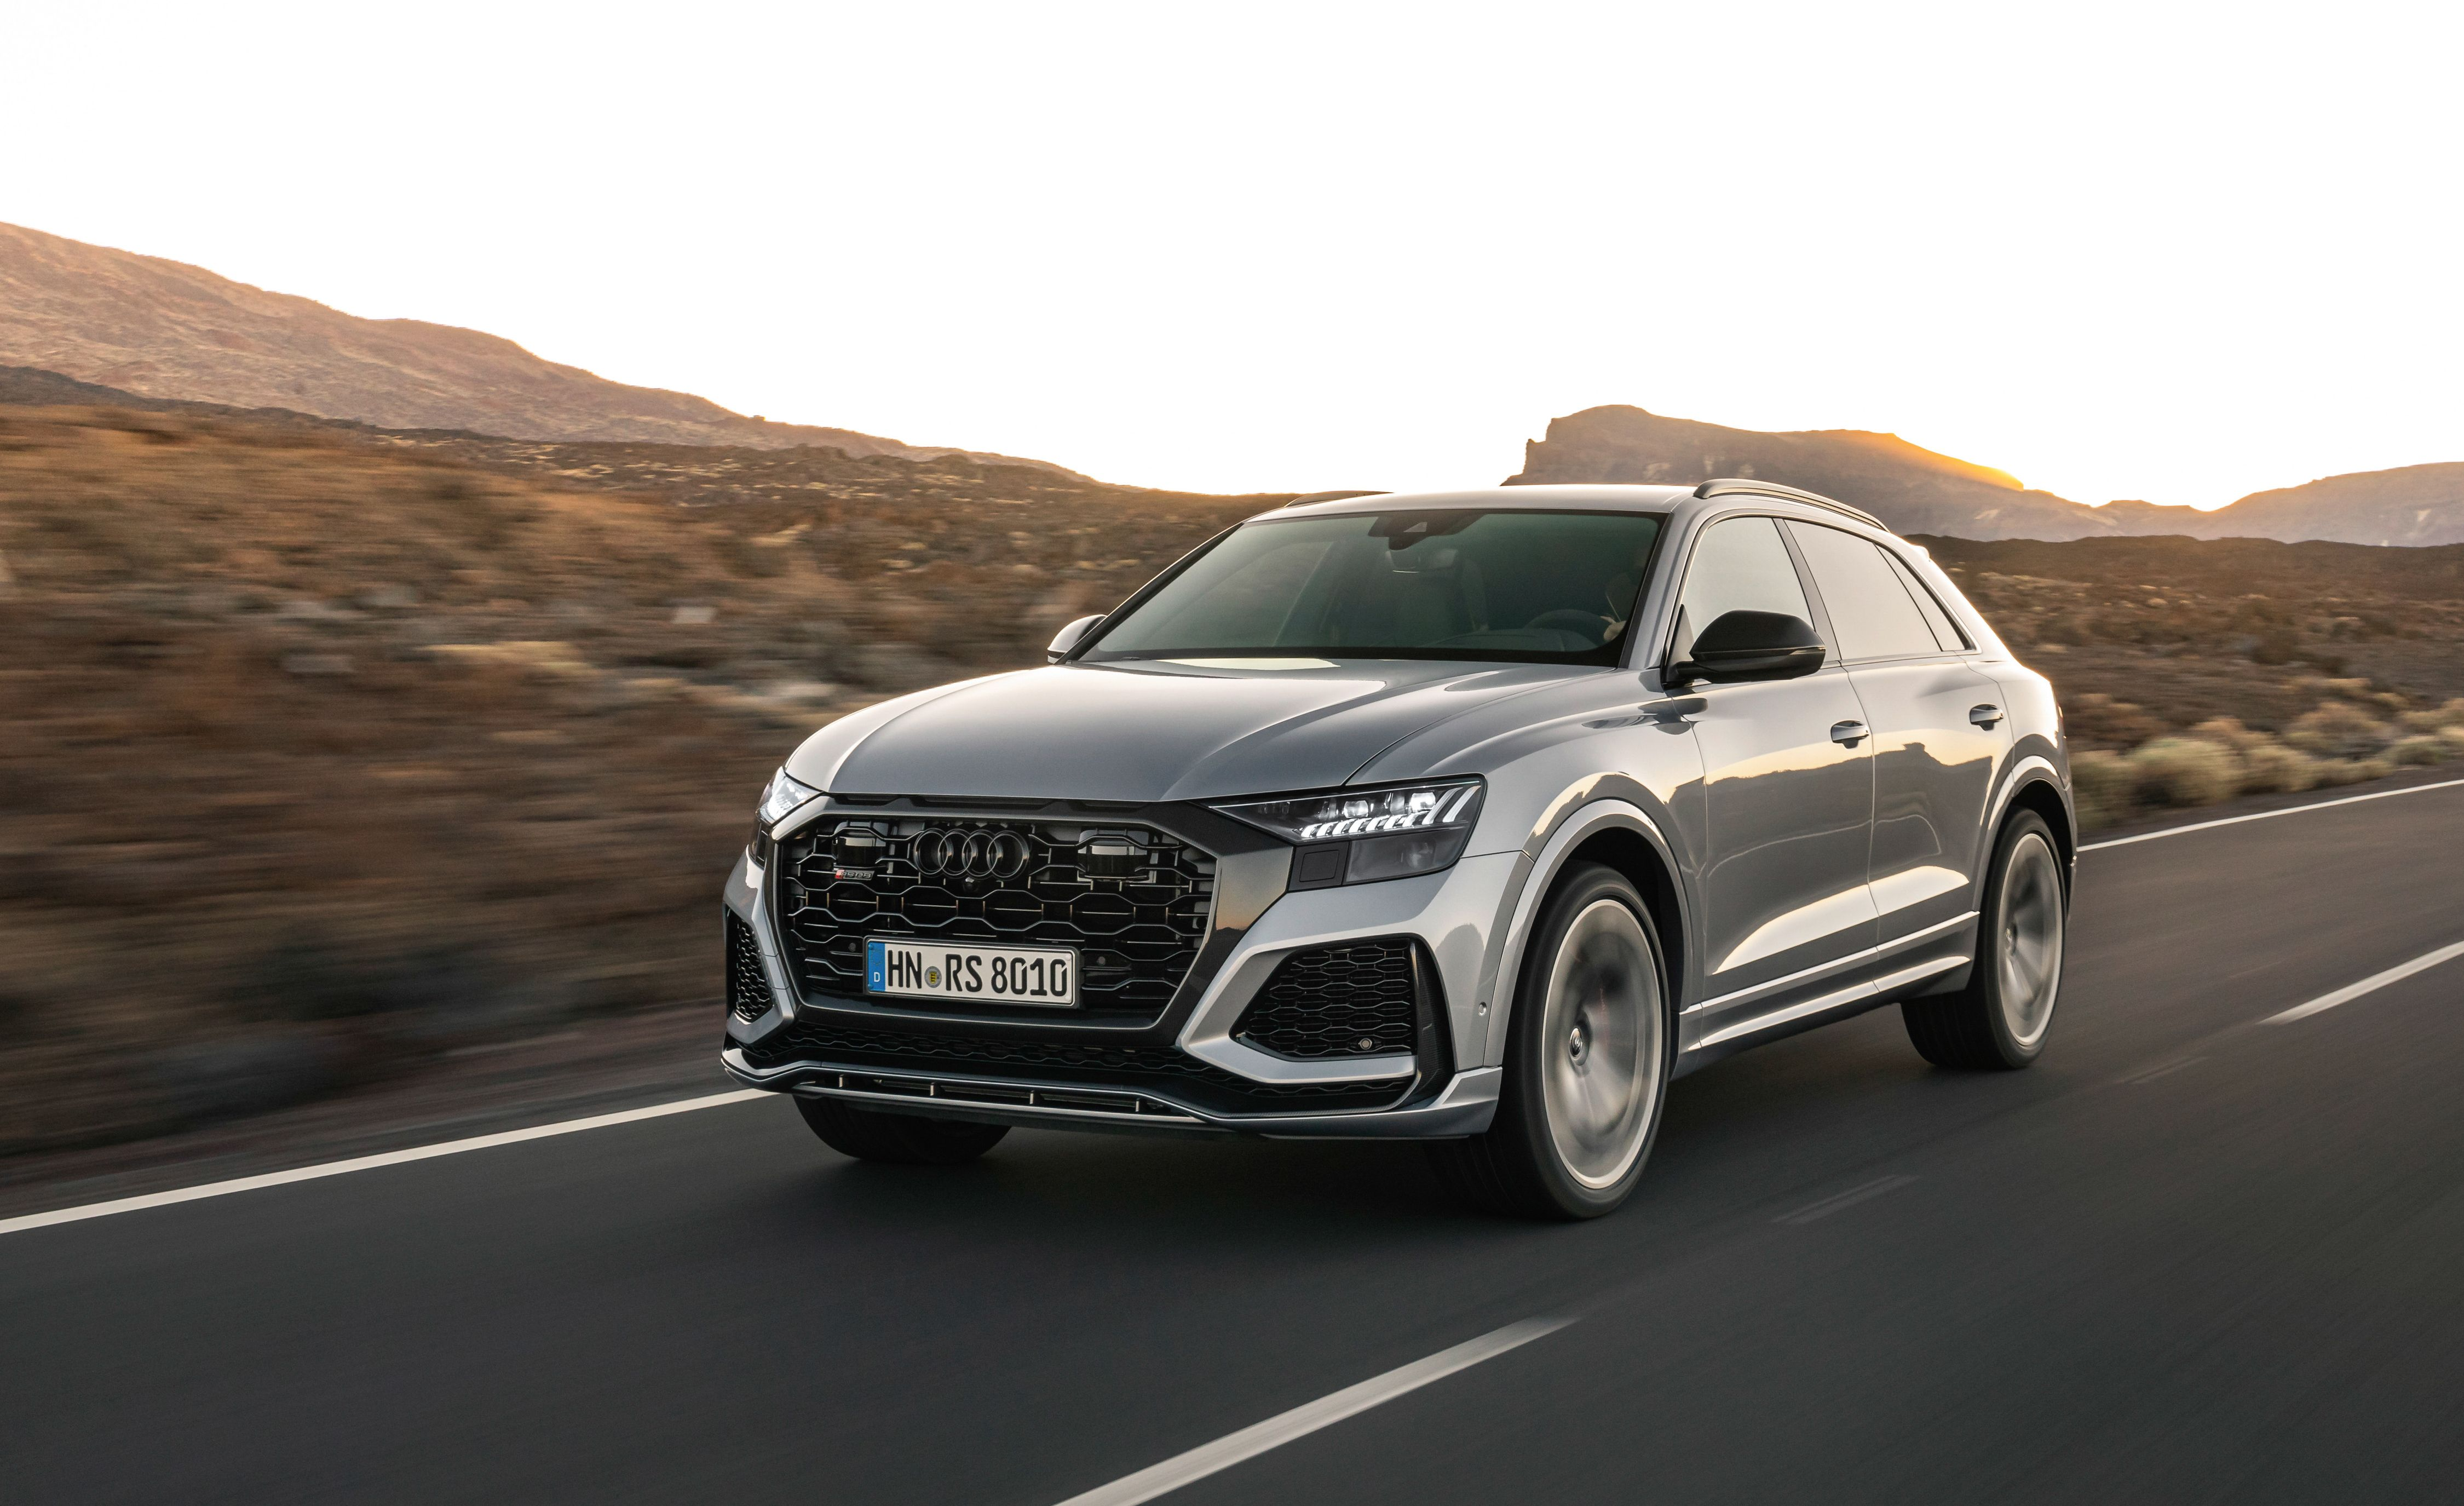 2020 Audi Rs Q8 Ultra High Performance Luxury Suv